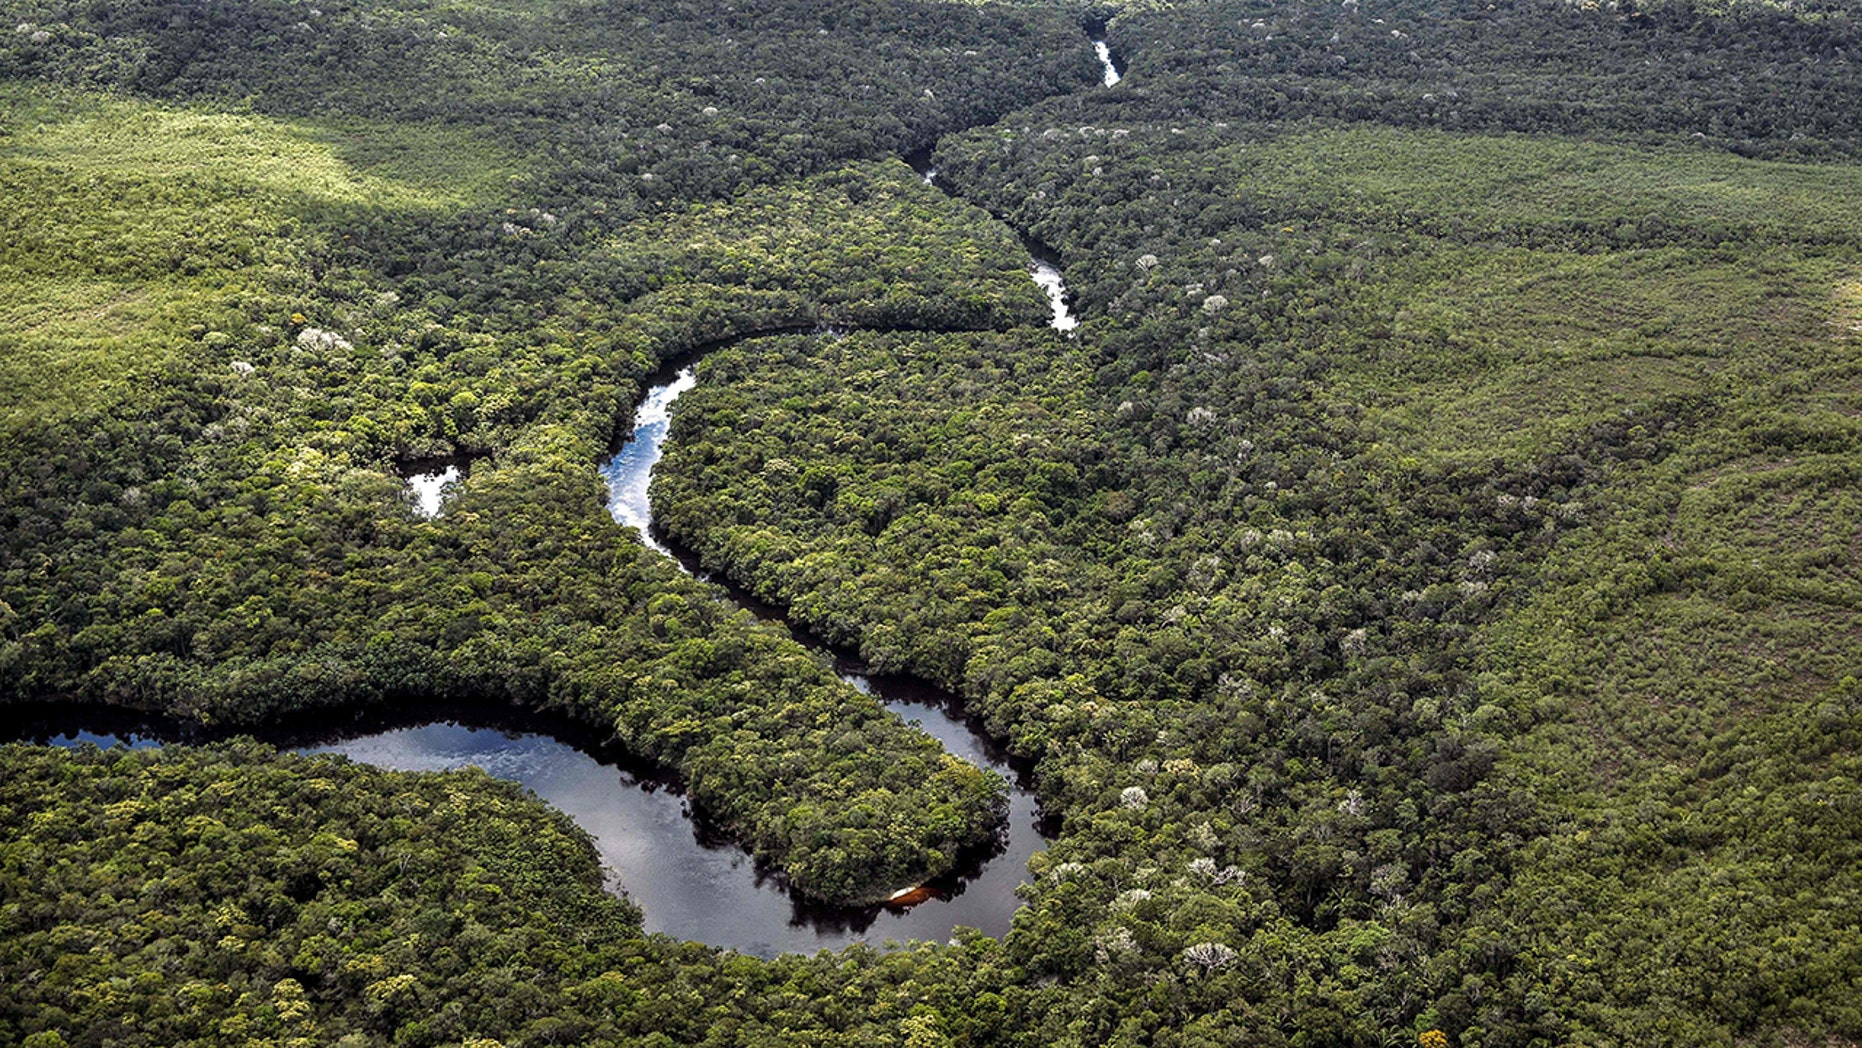 An aerial view of the Amazon rainforest.